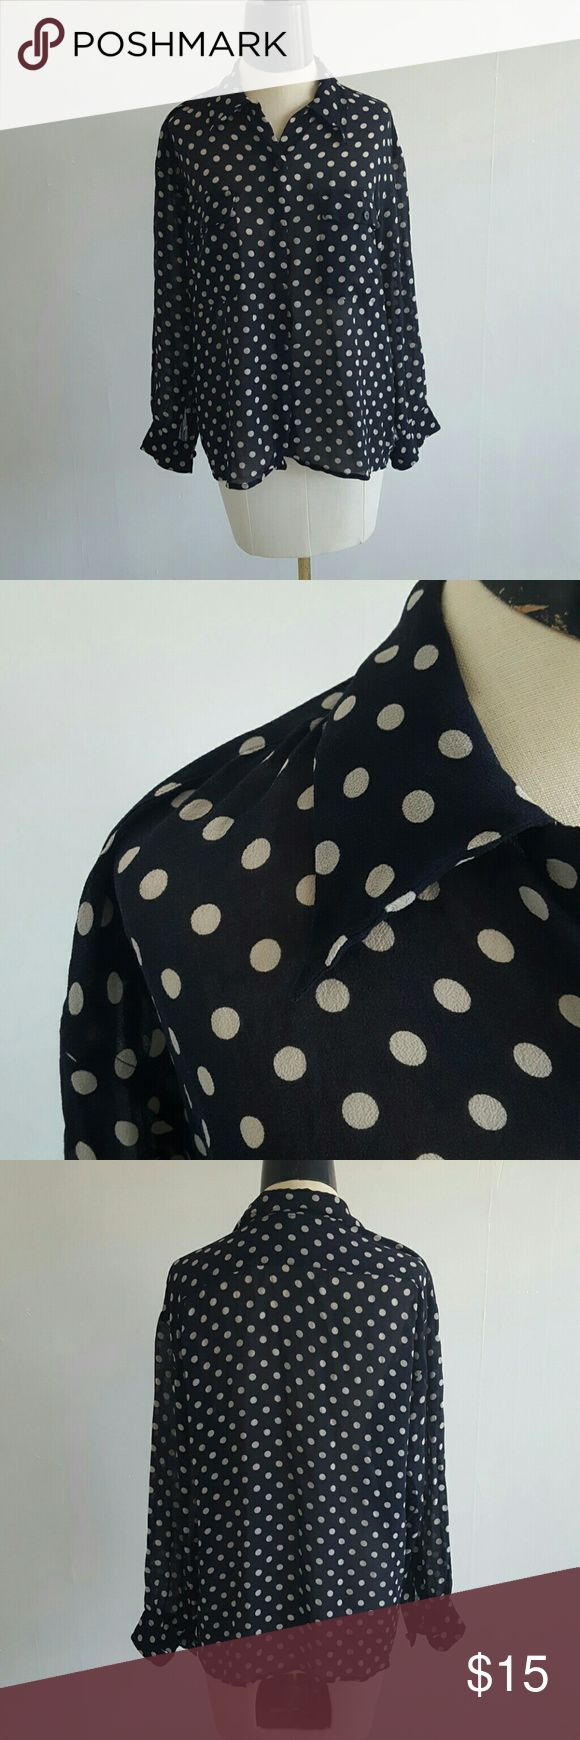 HARVEY NICHOLS polka dot blouse This 100% silk button up blouse is rather sheer with an amazing drape to it.  Navy Blue with white polka dots. Harvey Nichols Tops Blouses